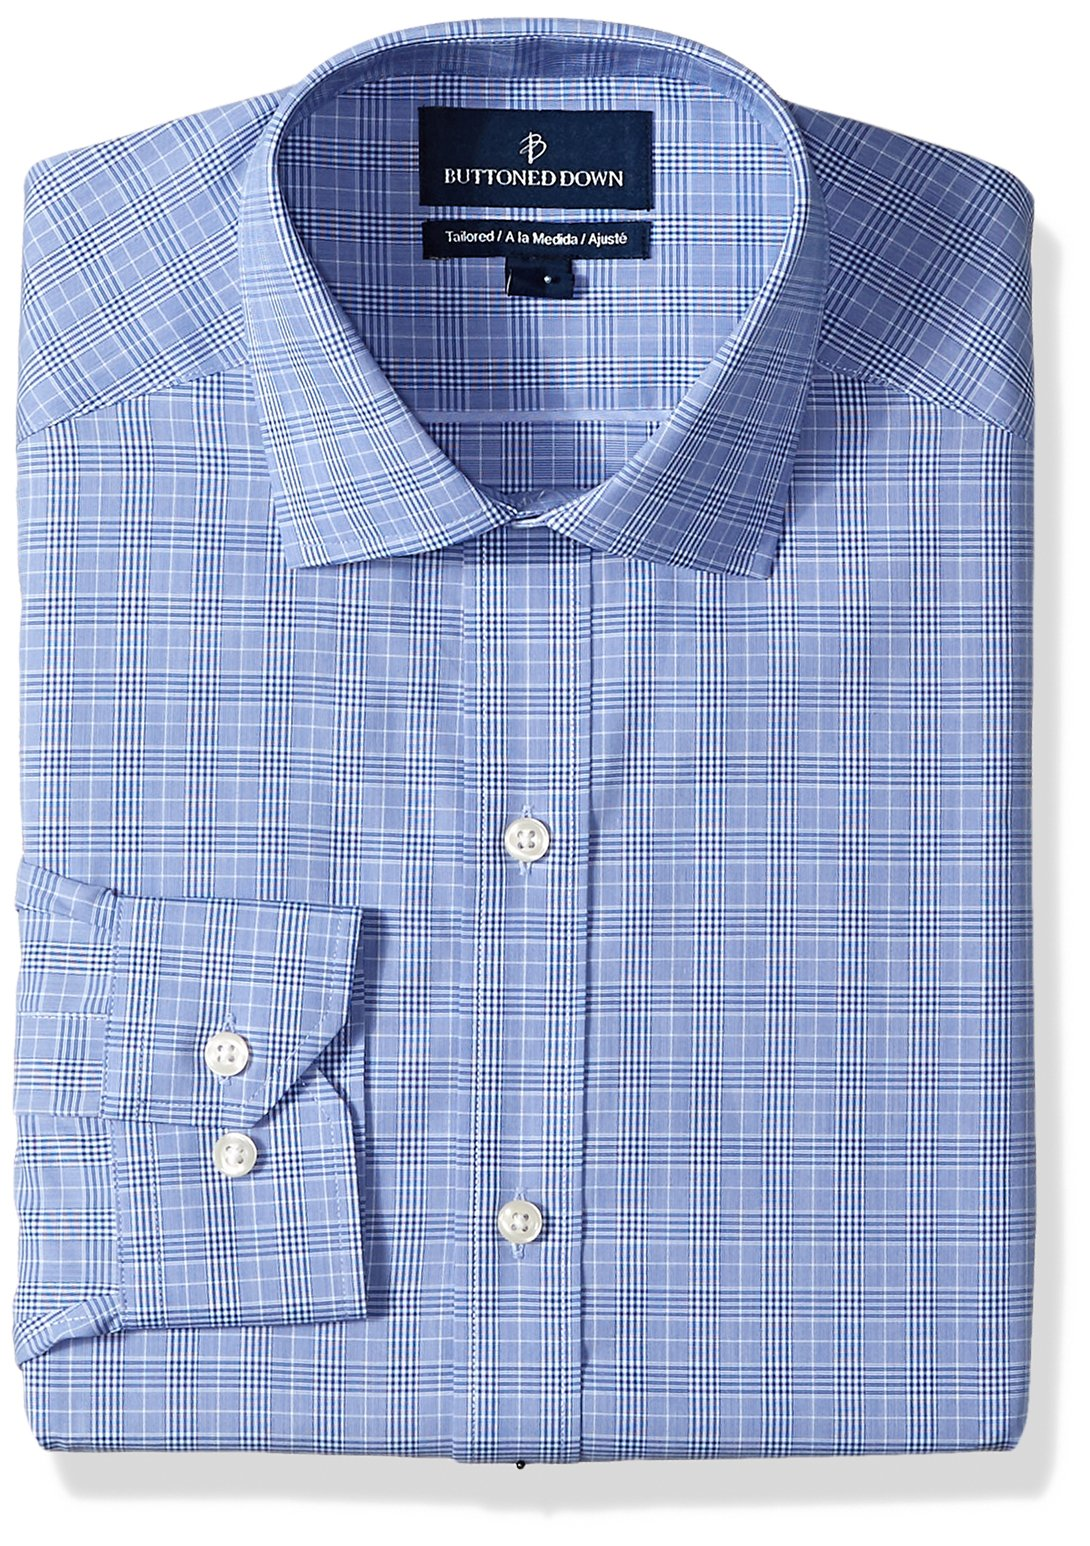 Buttoned Down Men's Tailored Fit Spread-Collar Non-Iron Dress Shirt, Blue Glen Plaid, 15.5'' Neck 33'' Sleeve by Buttoned Down